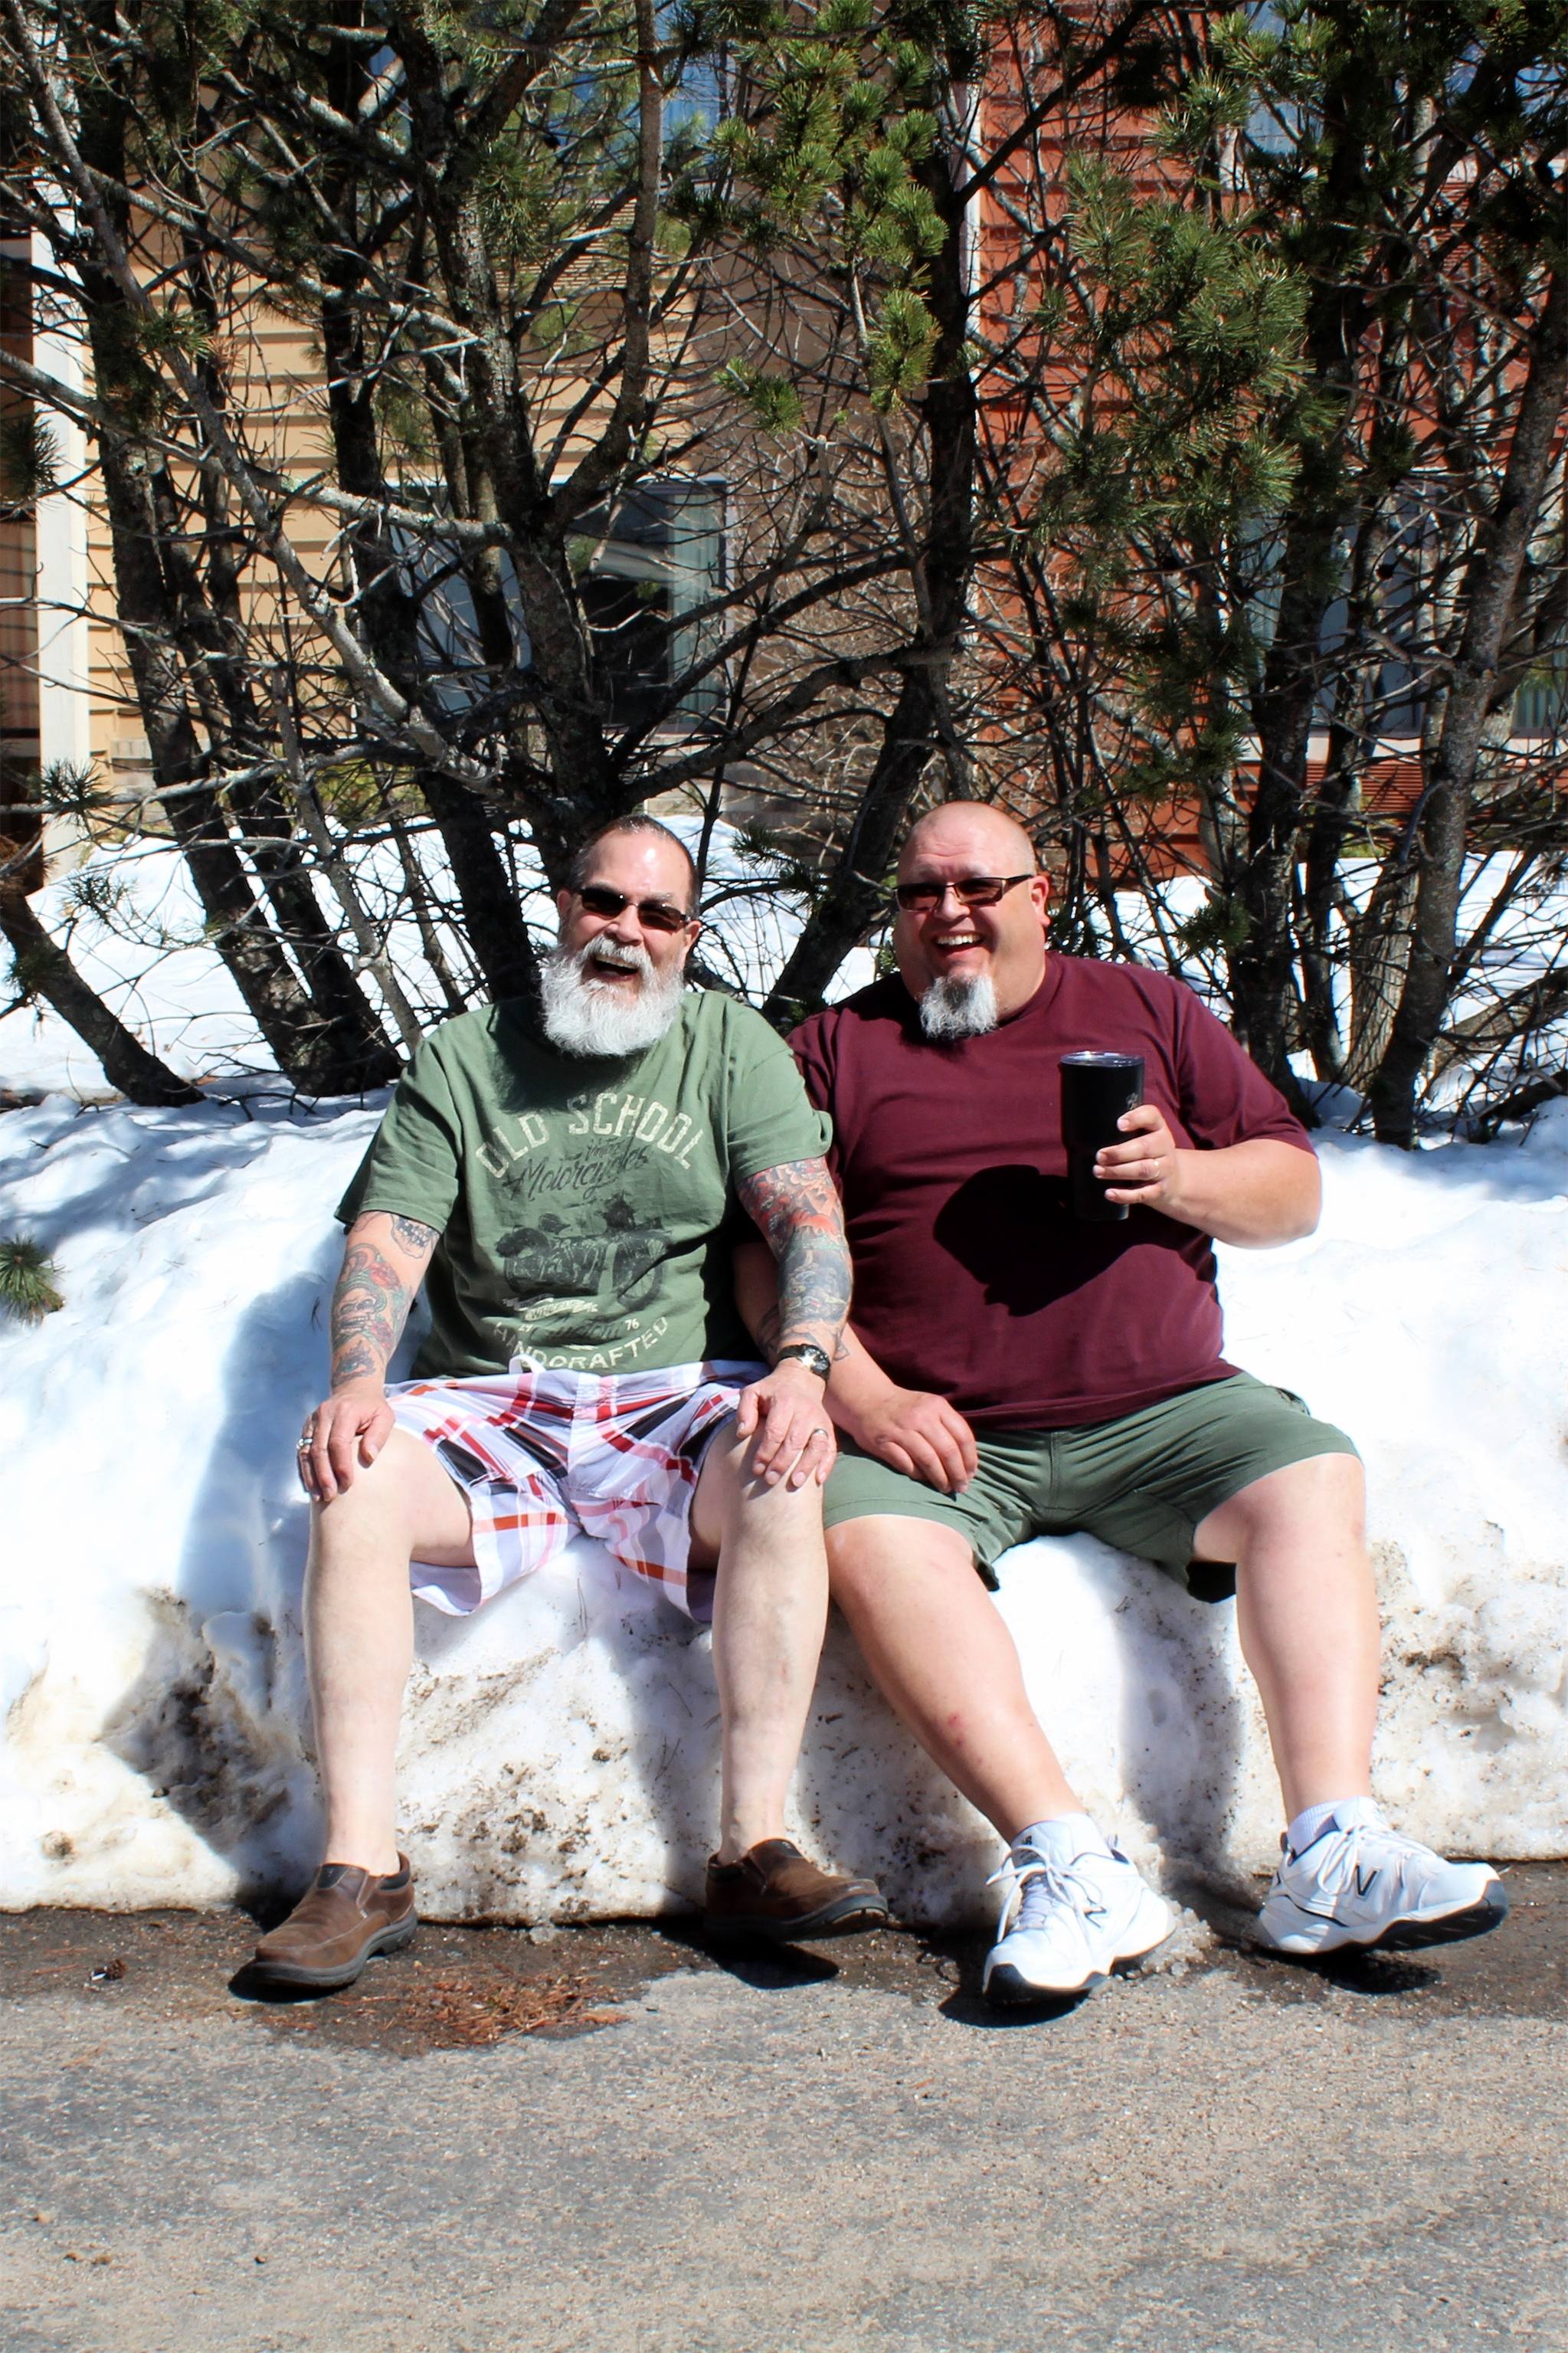 Wing and Mark take a seat in the snowbank at the AmericInn while enjoying the sun in Minocqua. Kim Johnson photo